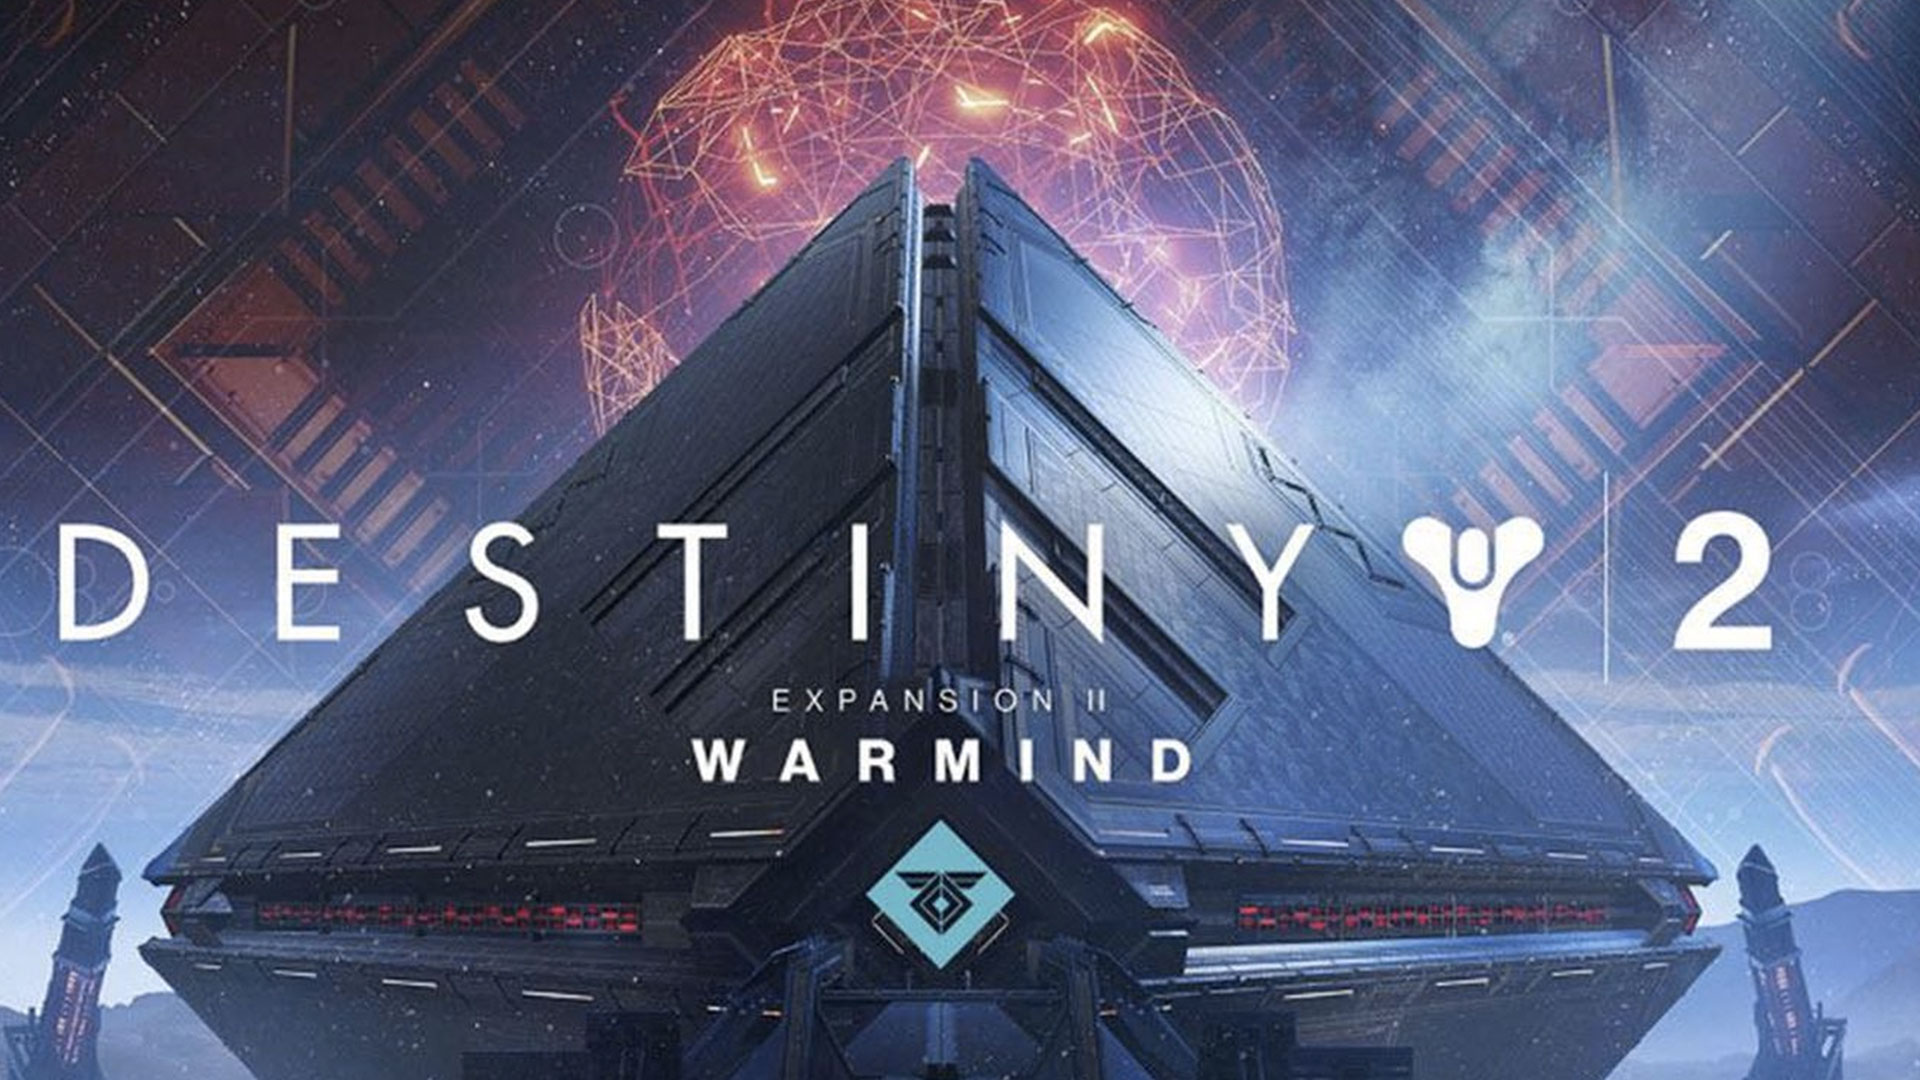 https://thumbor.forbes.com/thumbor/1280x868/https%3A%2F%2Fblogs-images.forbes.com%2Finsertcoin%2Ffiles%2F2018%2F04%2Fdestiny-warmind-new.jpg